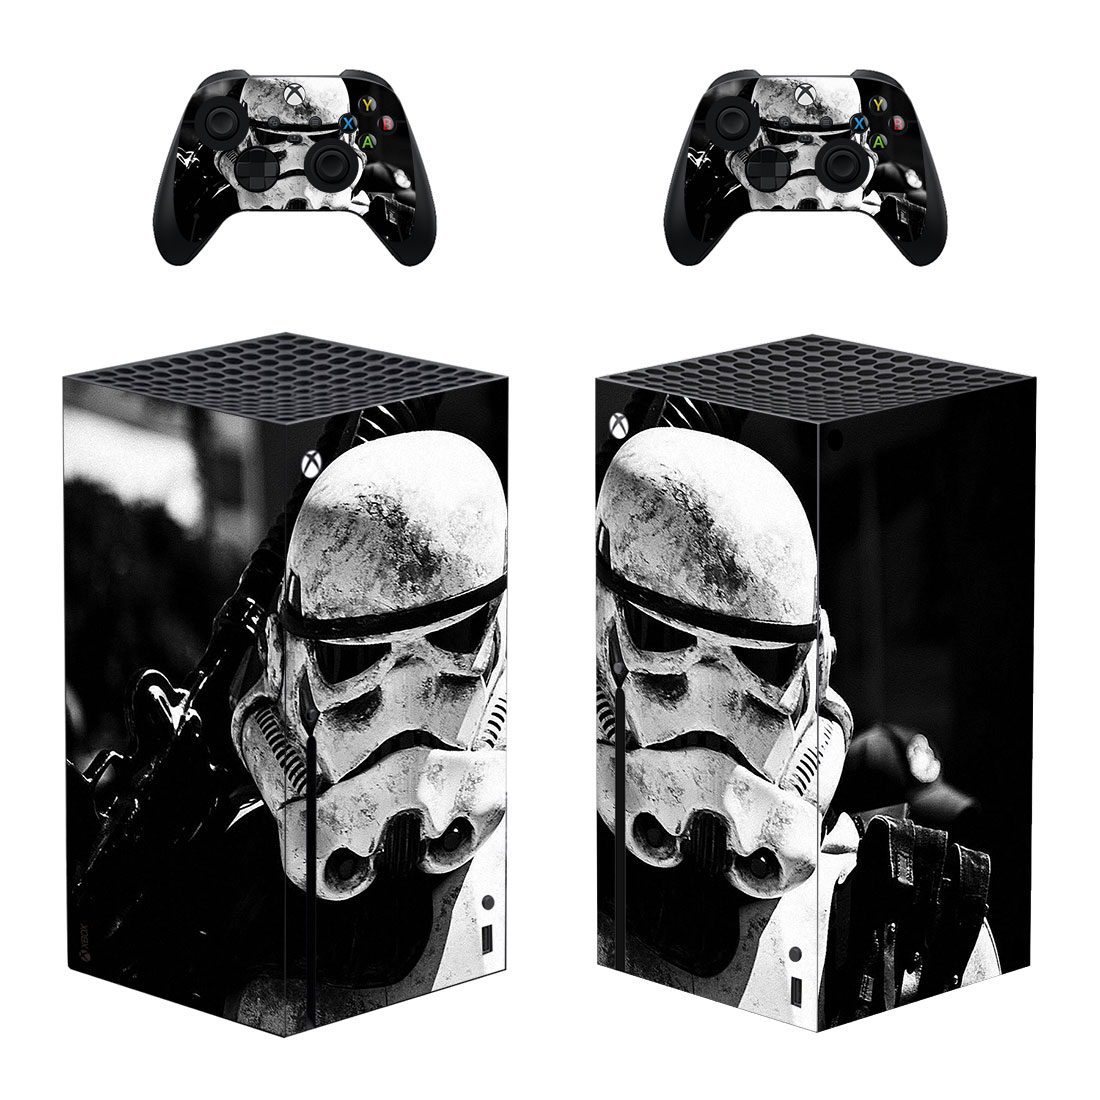 New Film Skin Sticker Decal Cover for Xbox Series X Console and 2 Controllers Xbox Series X Skin Sticker Vinyl